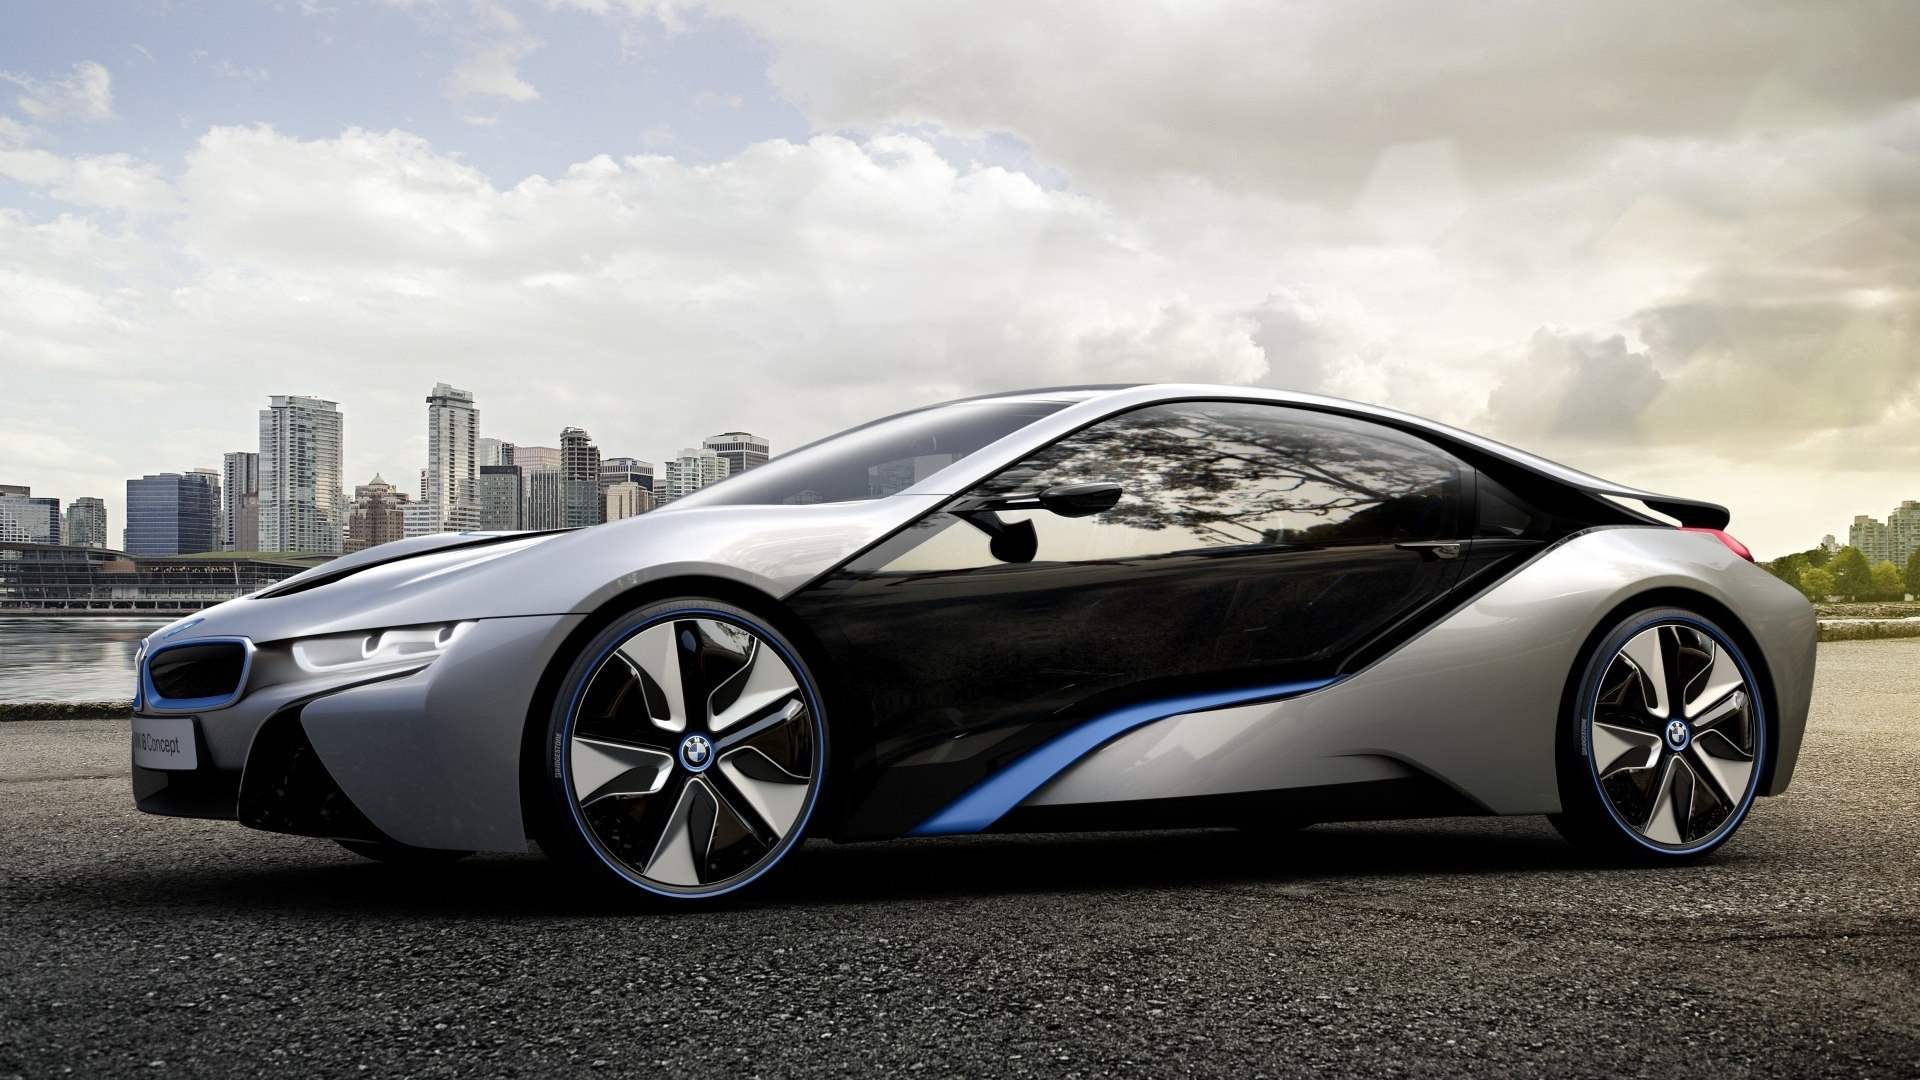 Wallpaper Bmw I8 Concept Car Dark Cars Images Full Hd Download 1920x1080 Download Hd Wallpaper Wallpapertip